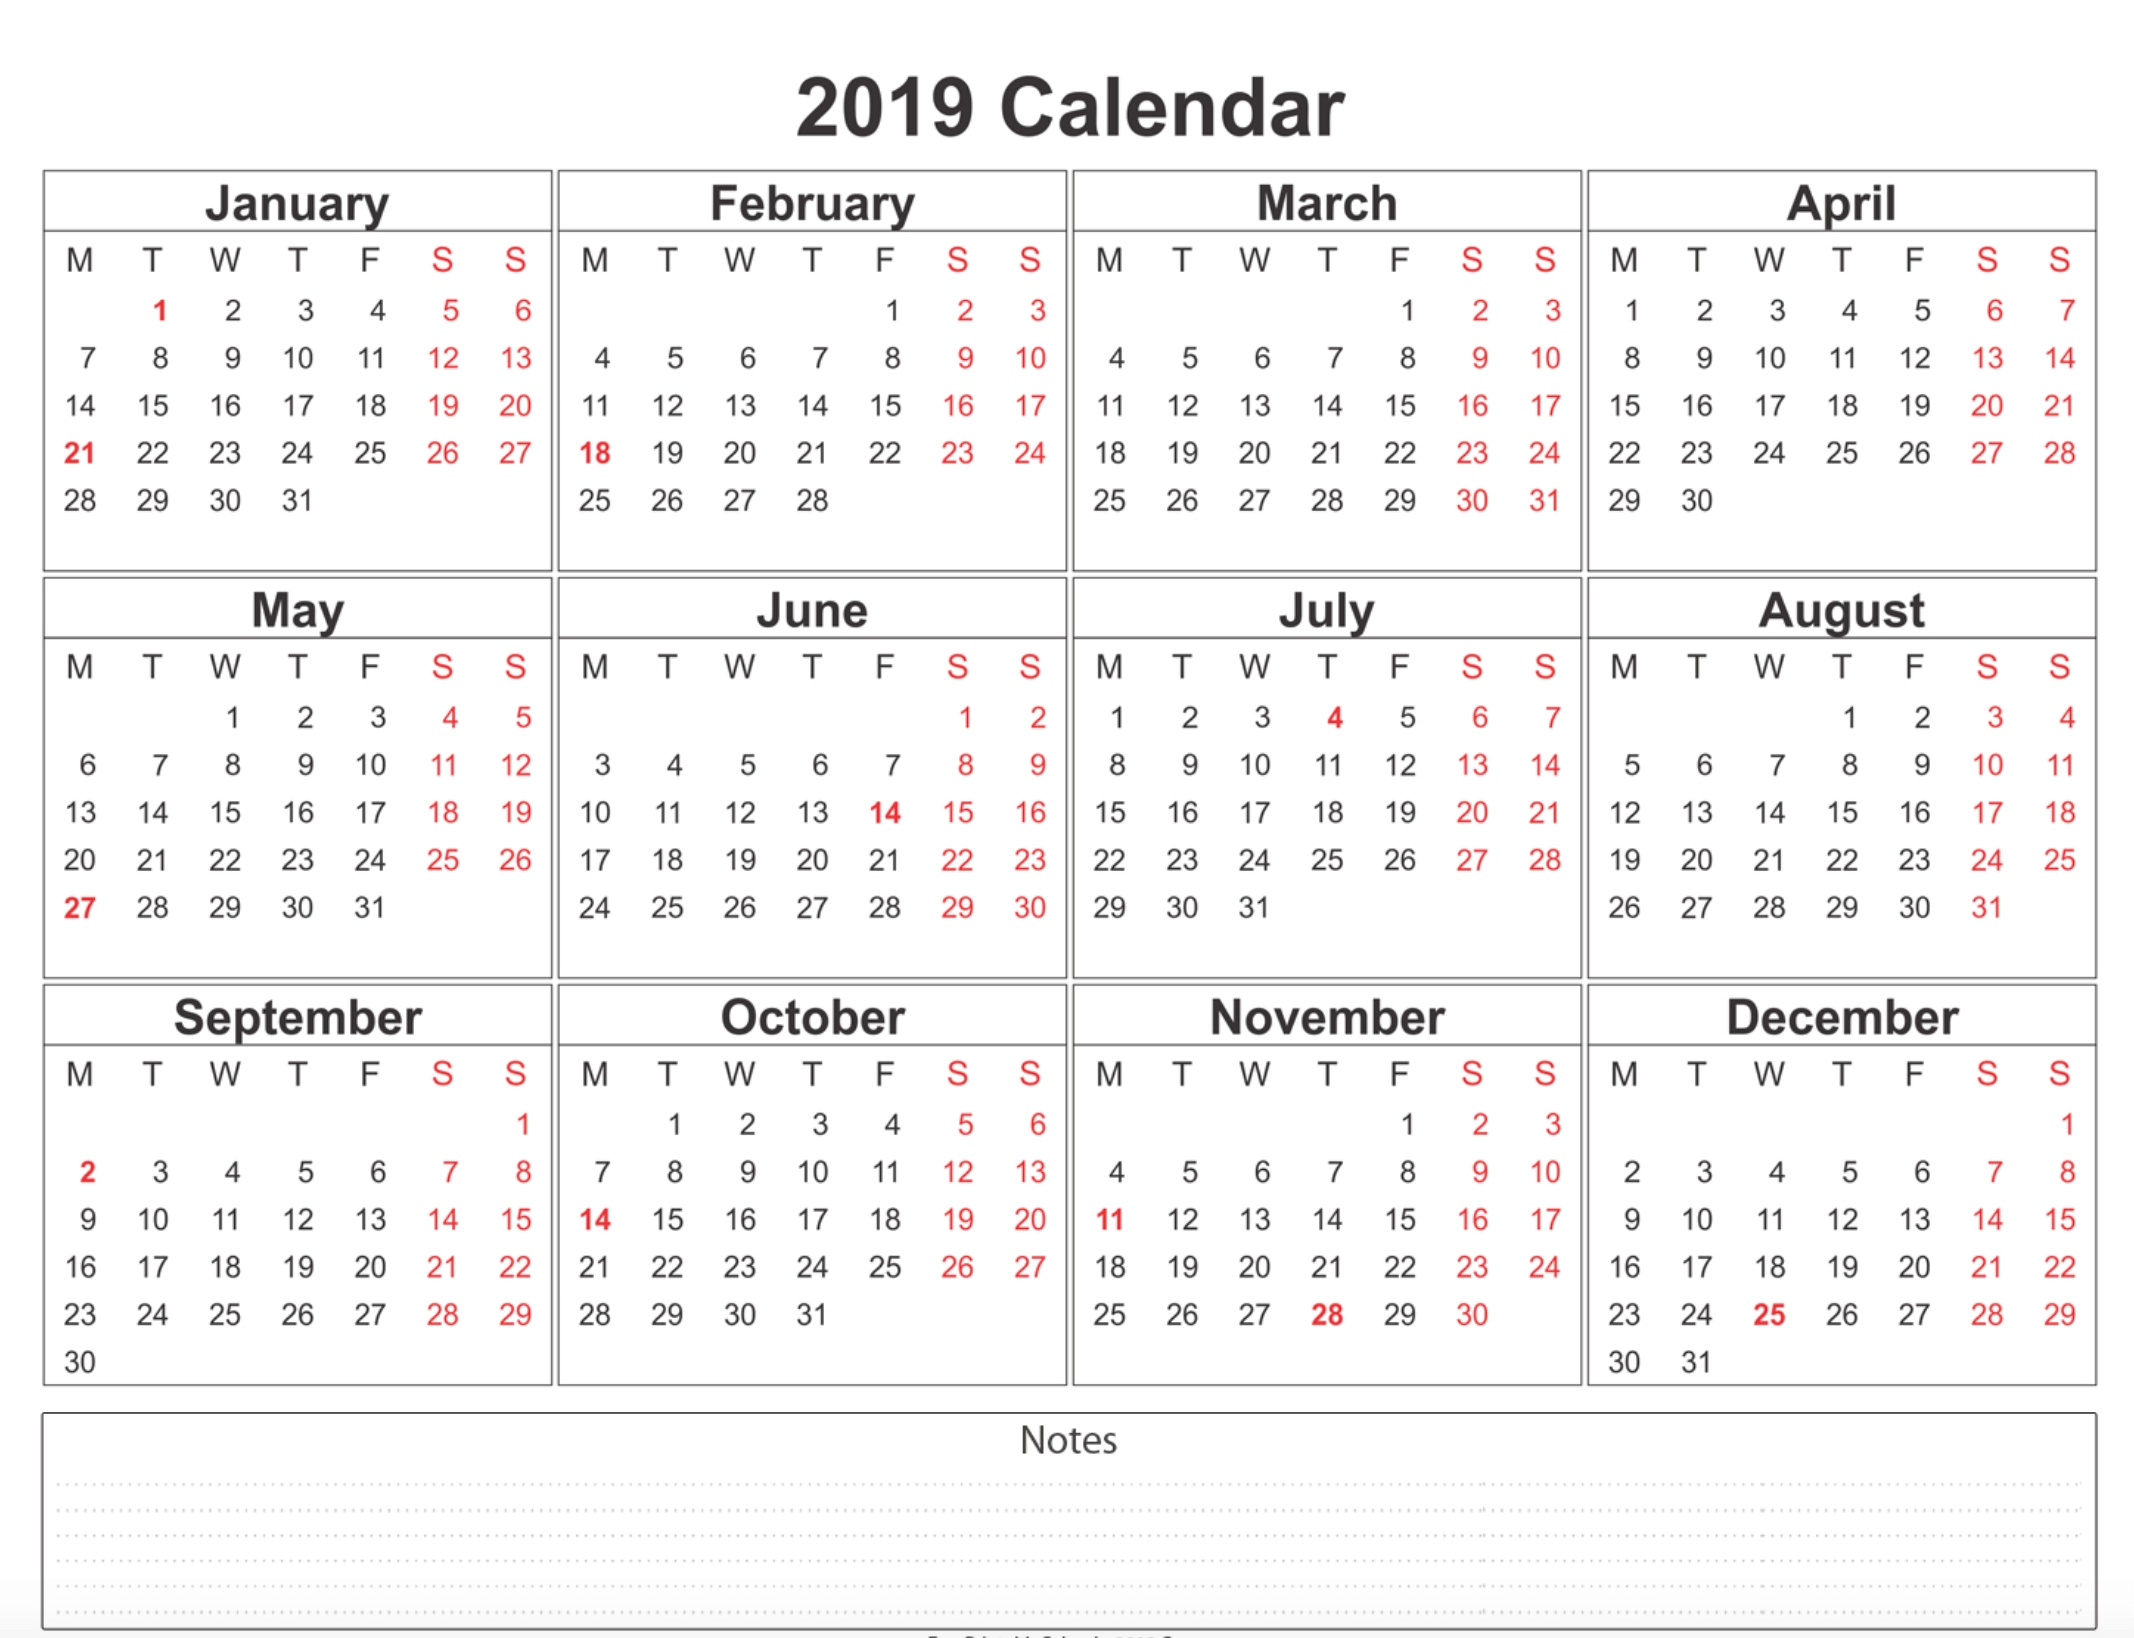 Free Blank Printable Calendar 2019 With Holidays Template-Five Day Monthly Calendar For Word